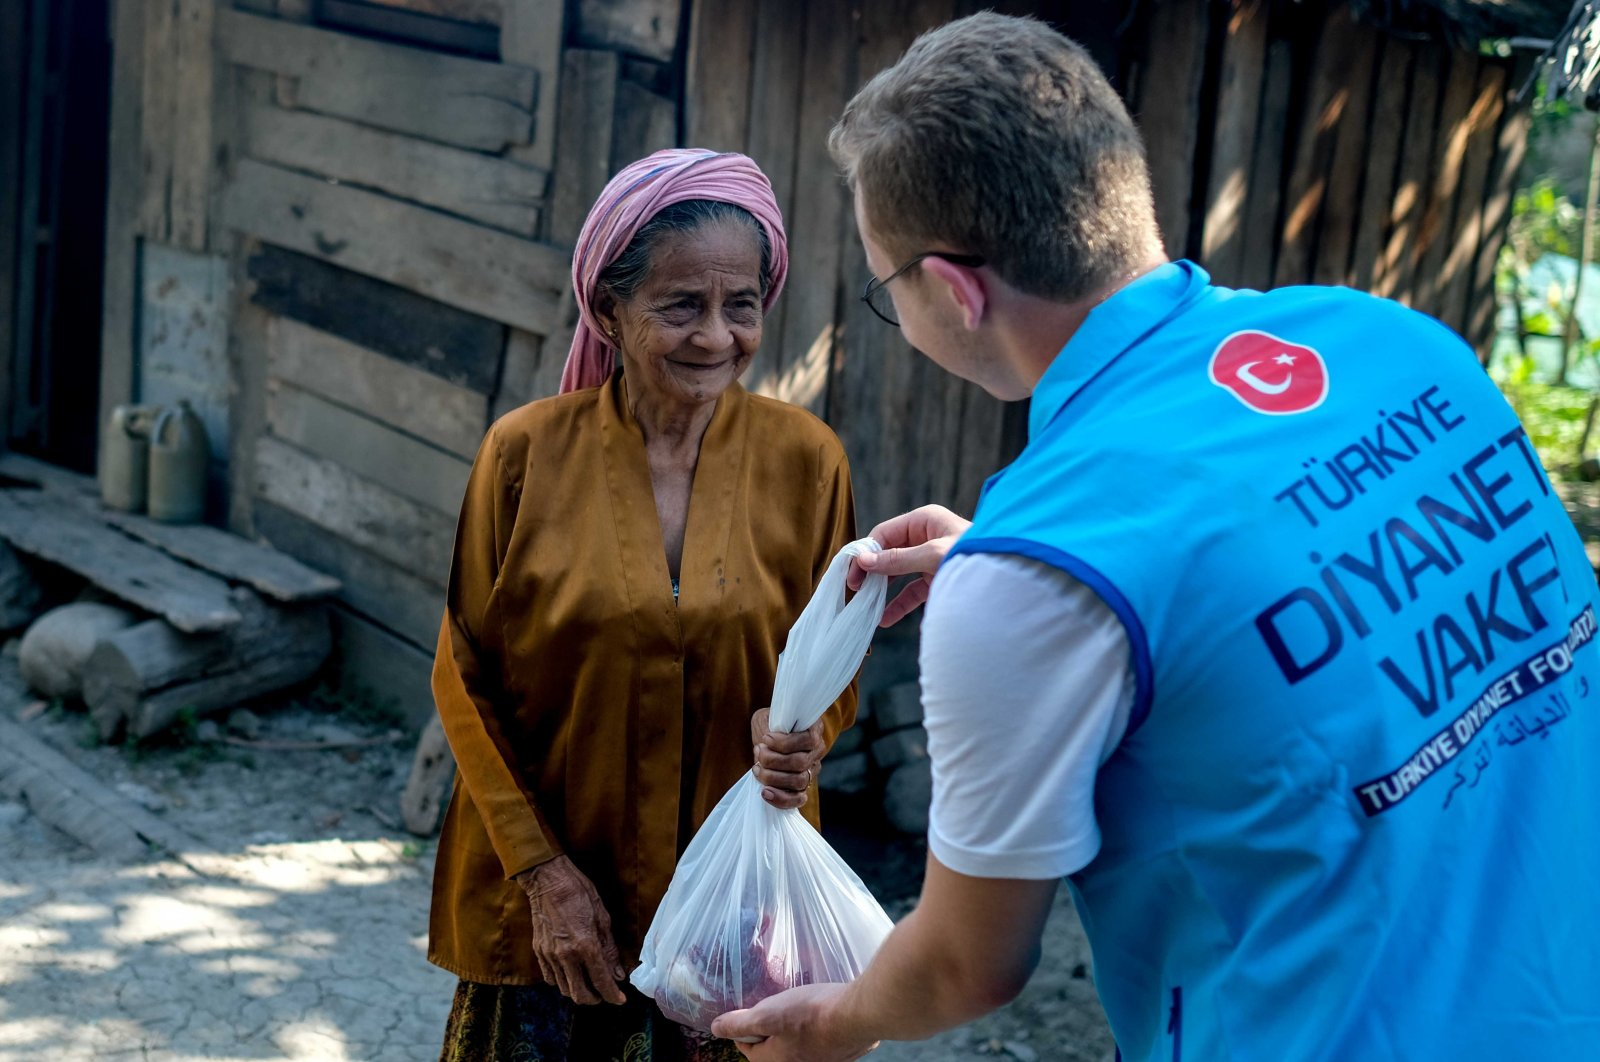 A Türkiye Diyanet Foundation (TDV) volunteer delivers aid to a woman in the Bangsamoro Autonomous Region of the Philippines, Aug. 11, 2019. (AA Photo)